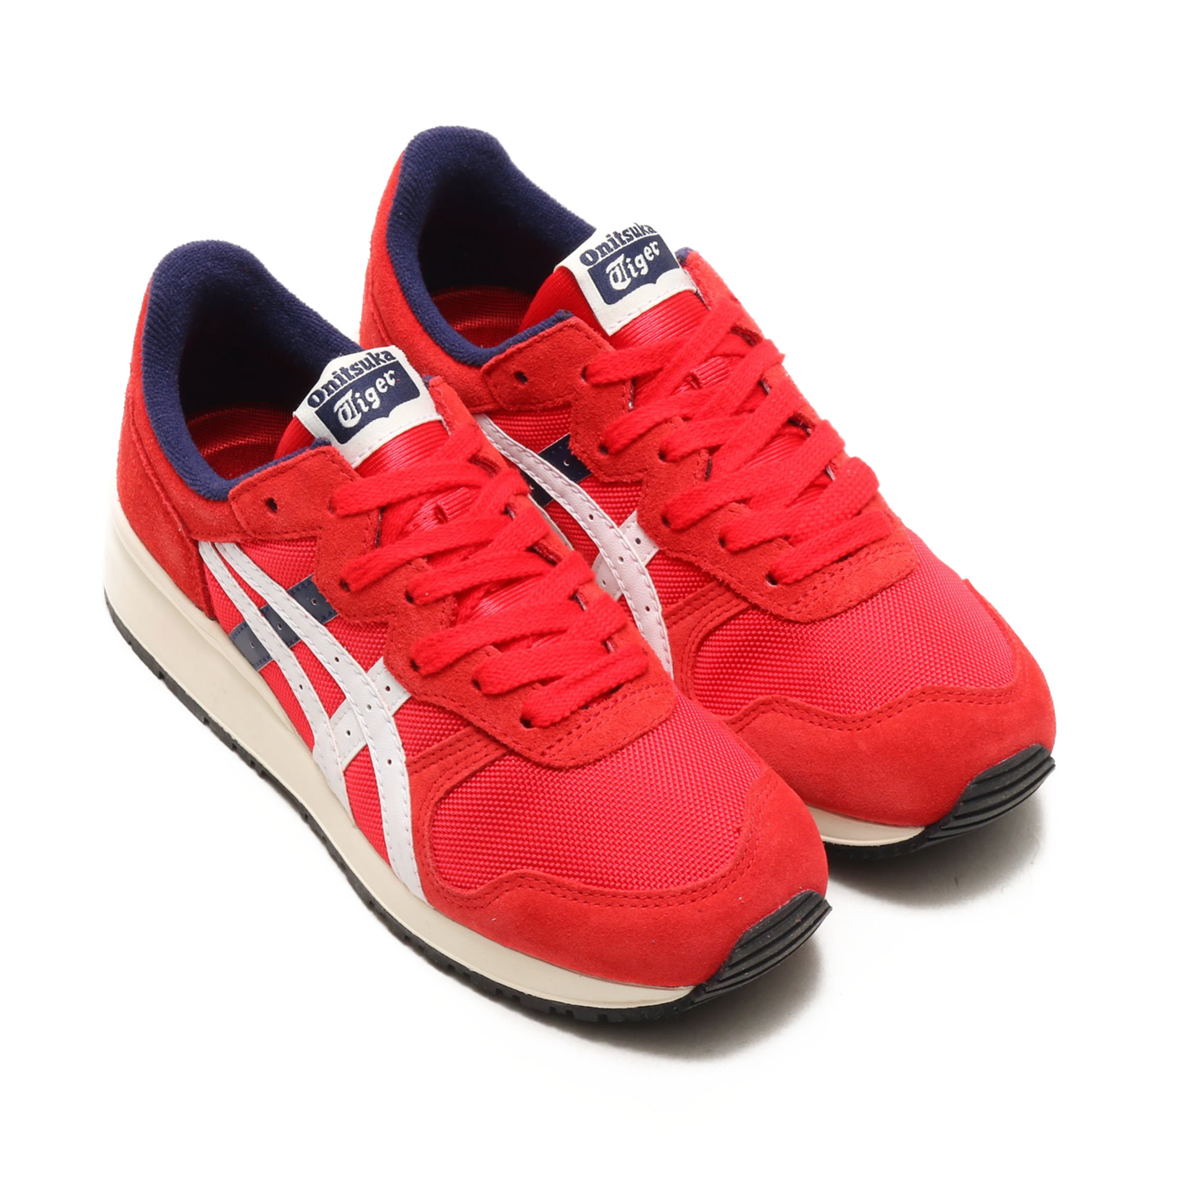 new arrivals 20217 f68b5 Details about ONITSUKA TIGER Tiger Ally Men | Classic Red / Cream  (1183A029-600)